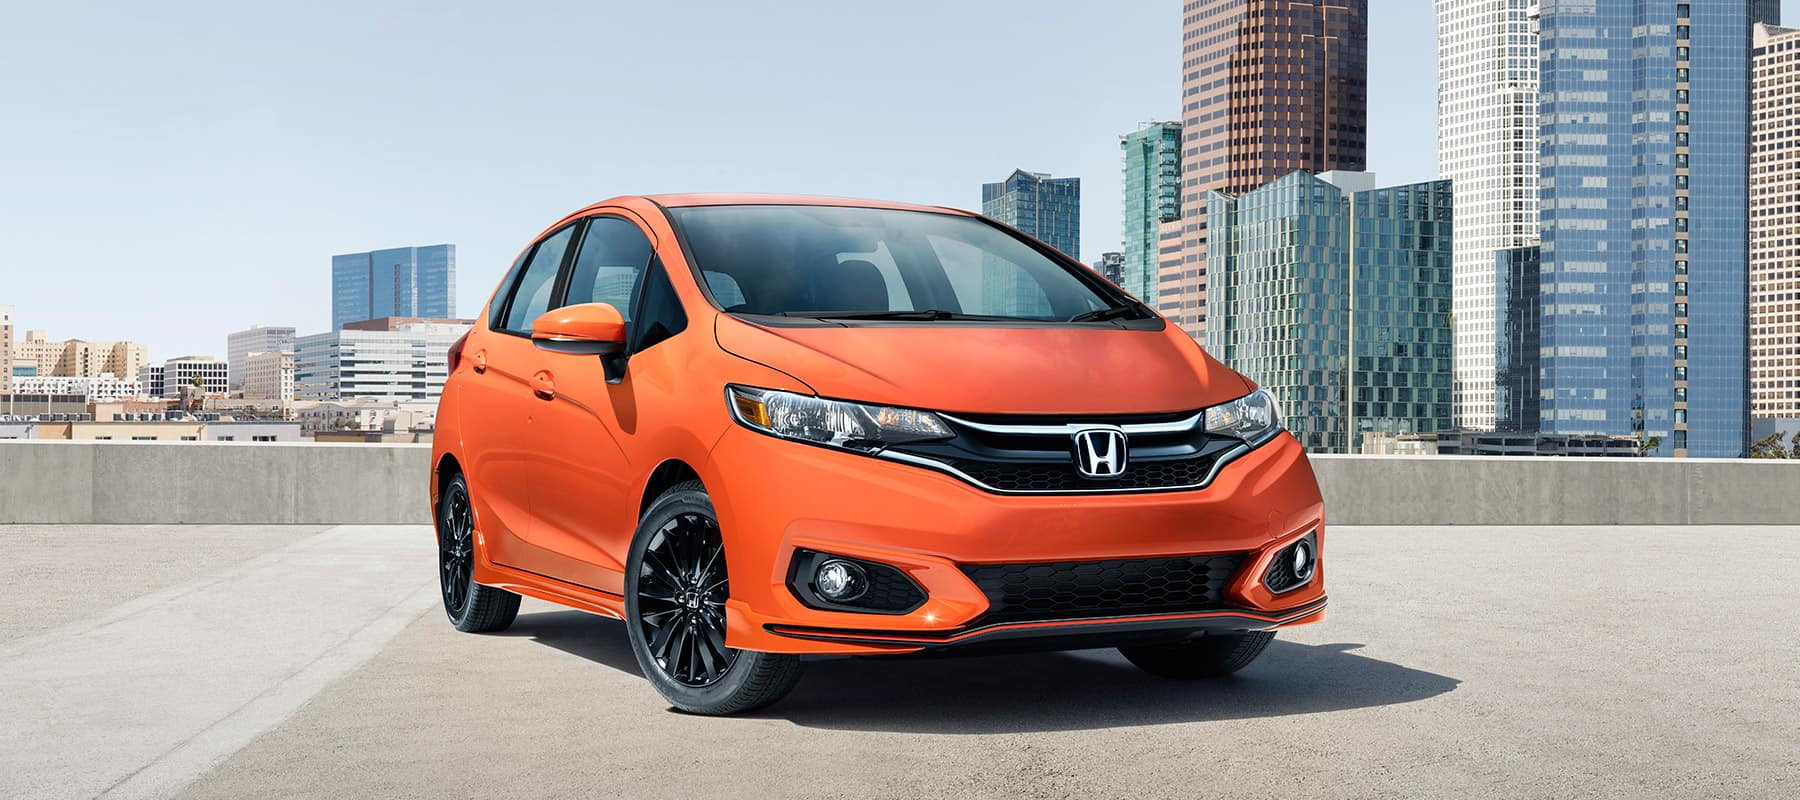 2018 honda fit what s new a sports trim new colors and technology. Black Bedroom Furniture Sets. Home Design Ideas